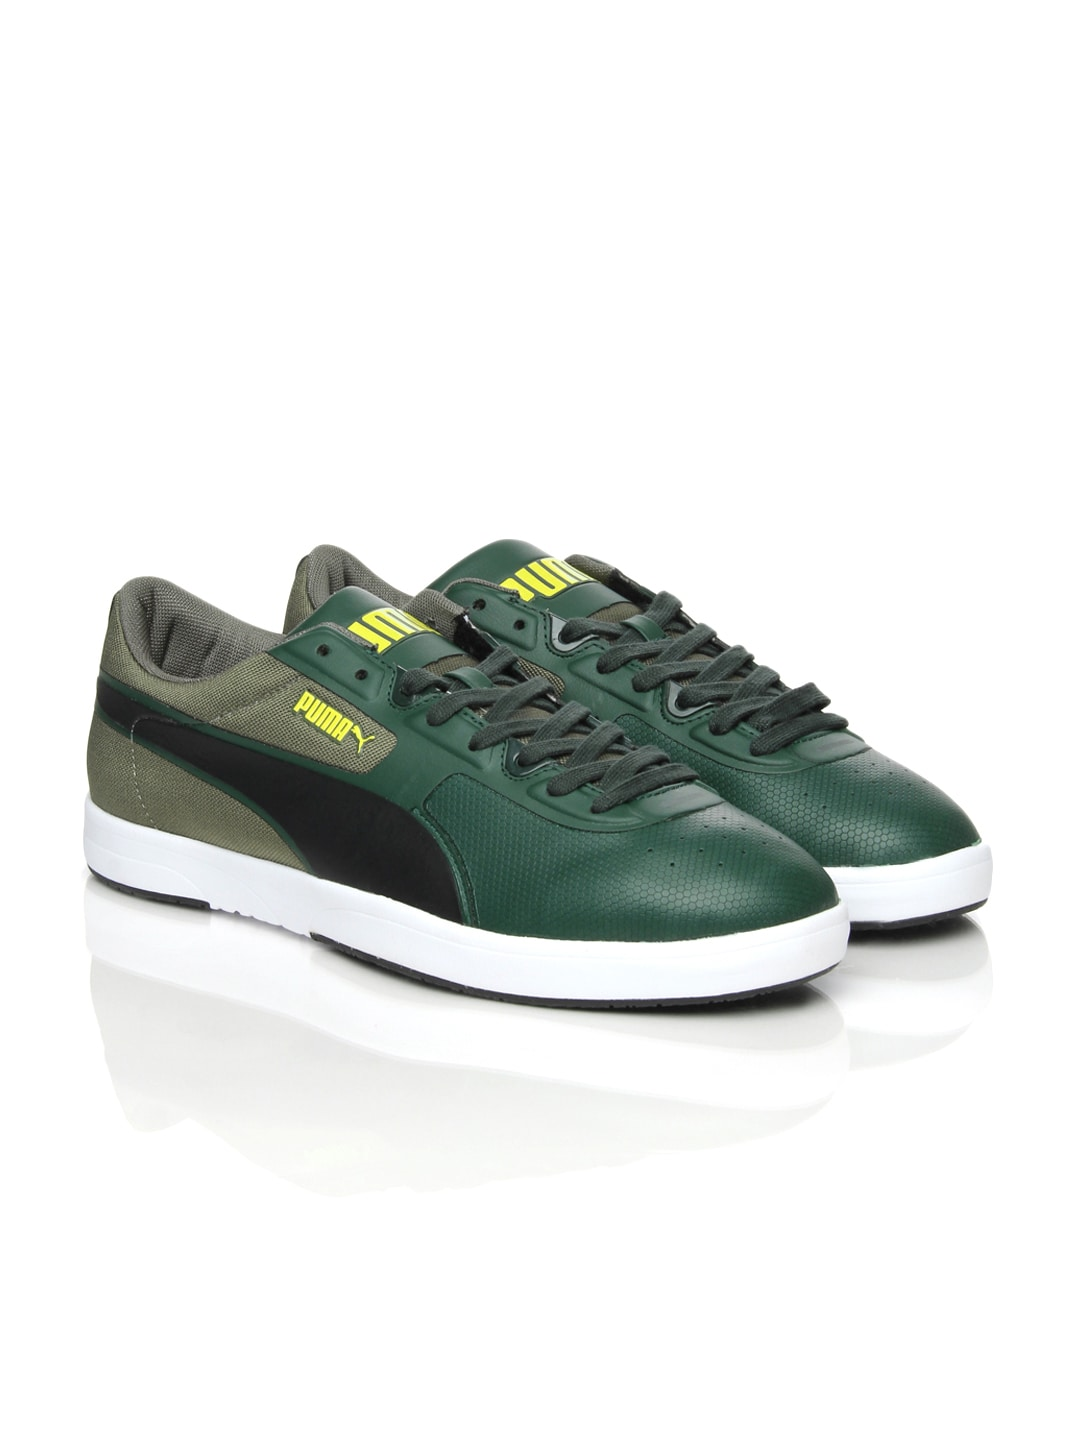 0ee2f05172532 Puma 35694803 Men Green Future Brasil Lite Rugged Casual Shoes- Price in  India